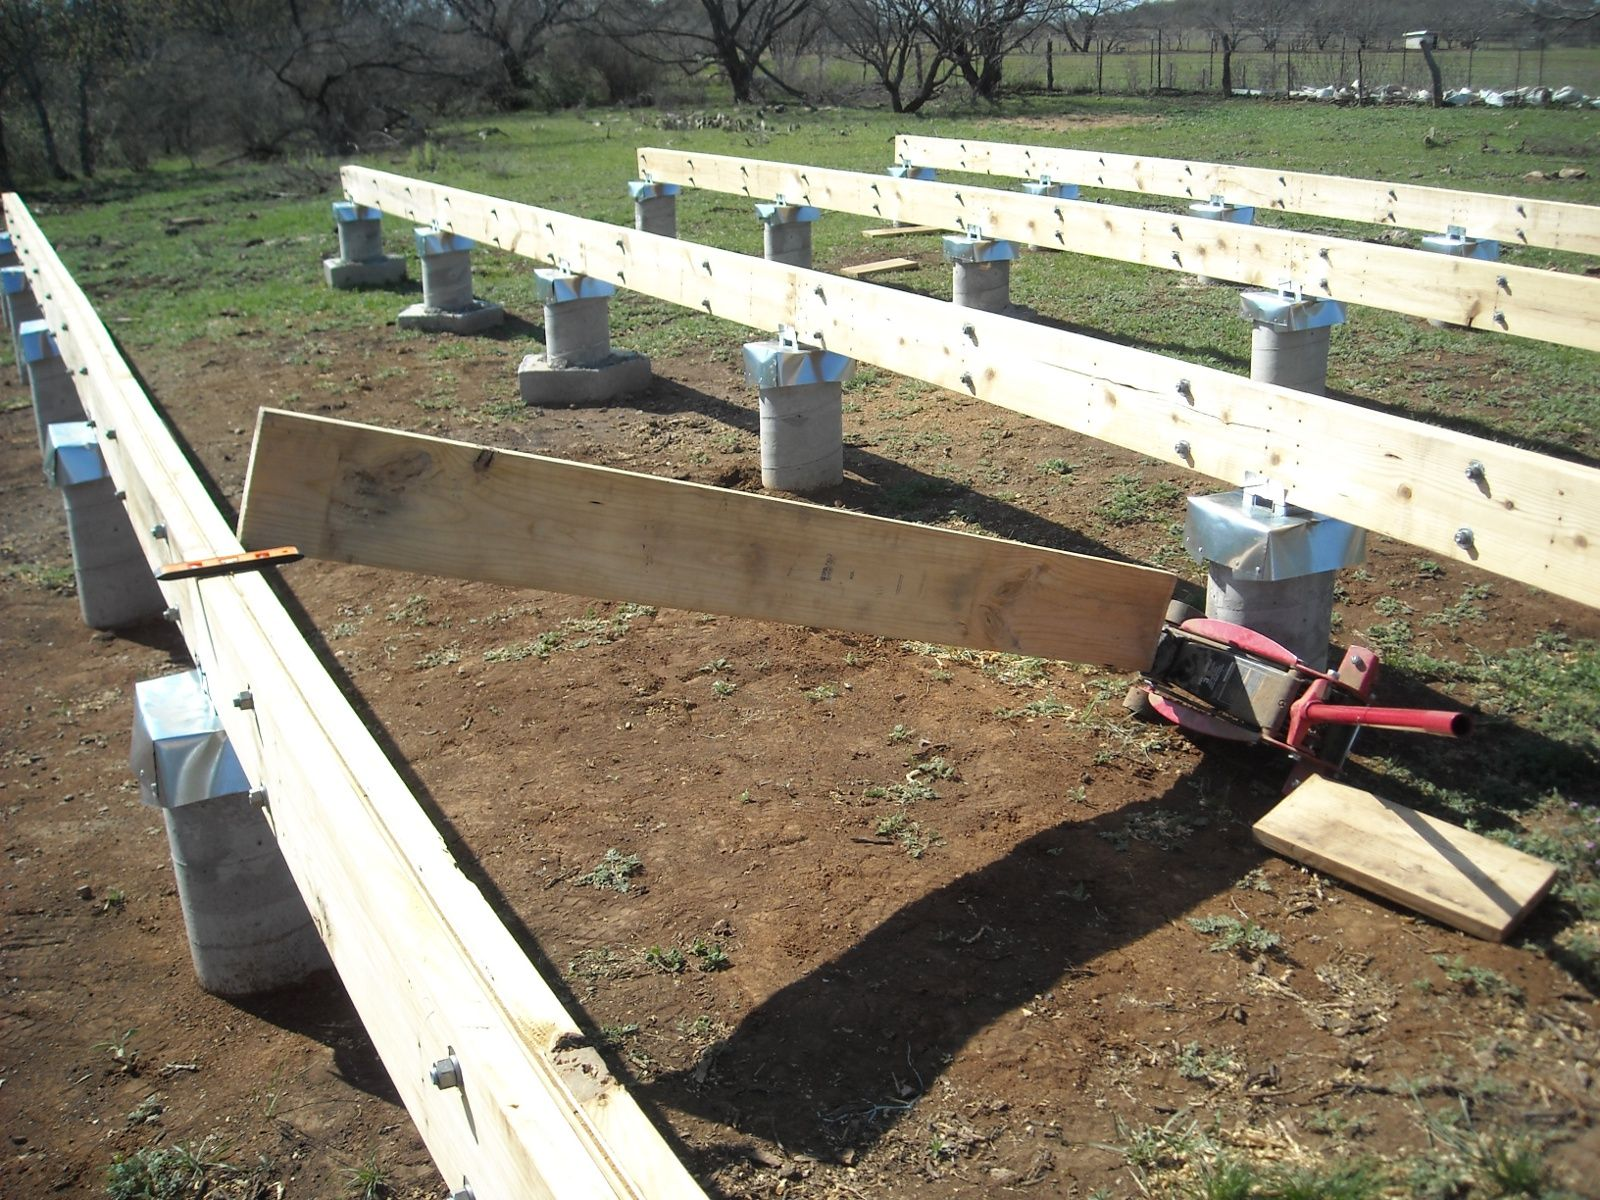 using floor jack to upright the torqued foundation beams